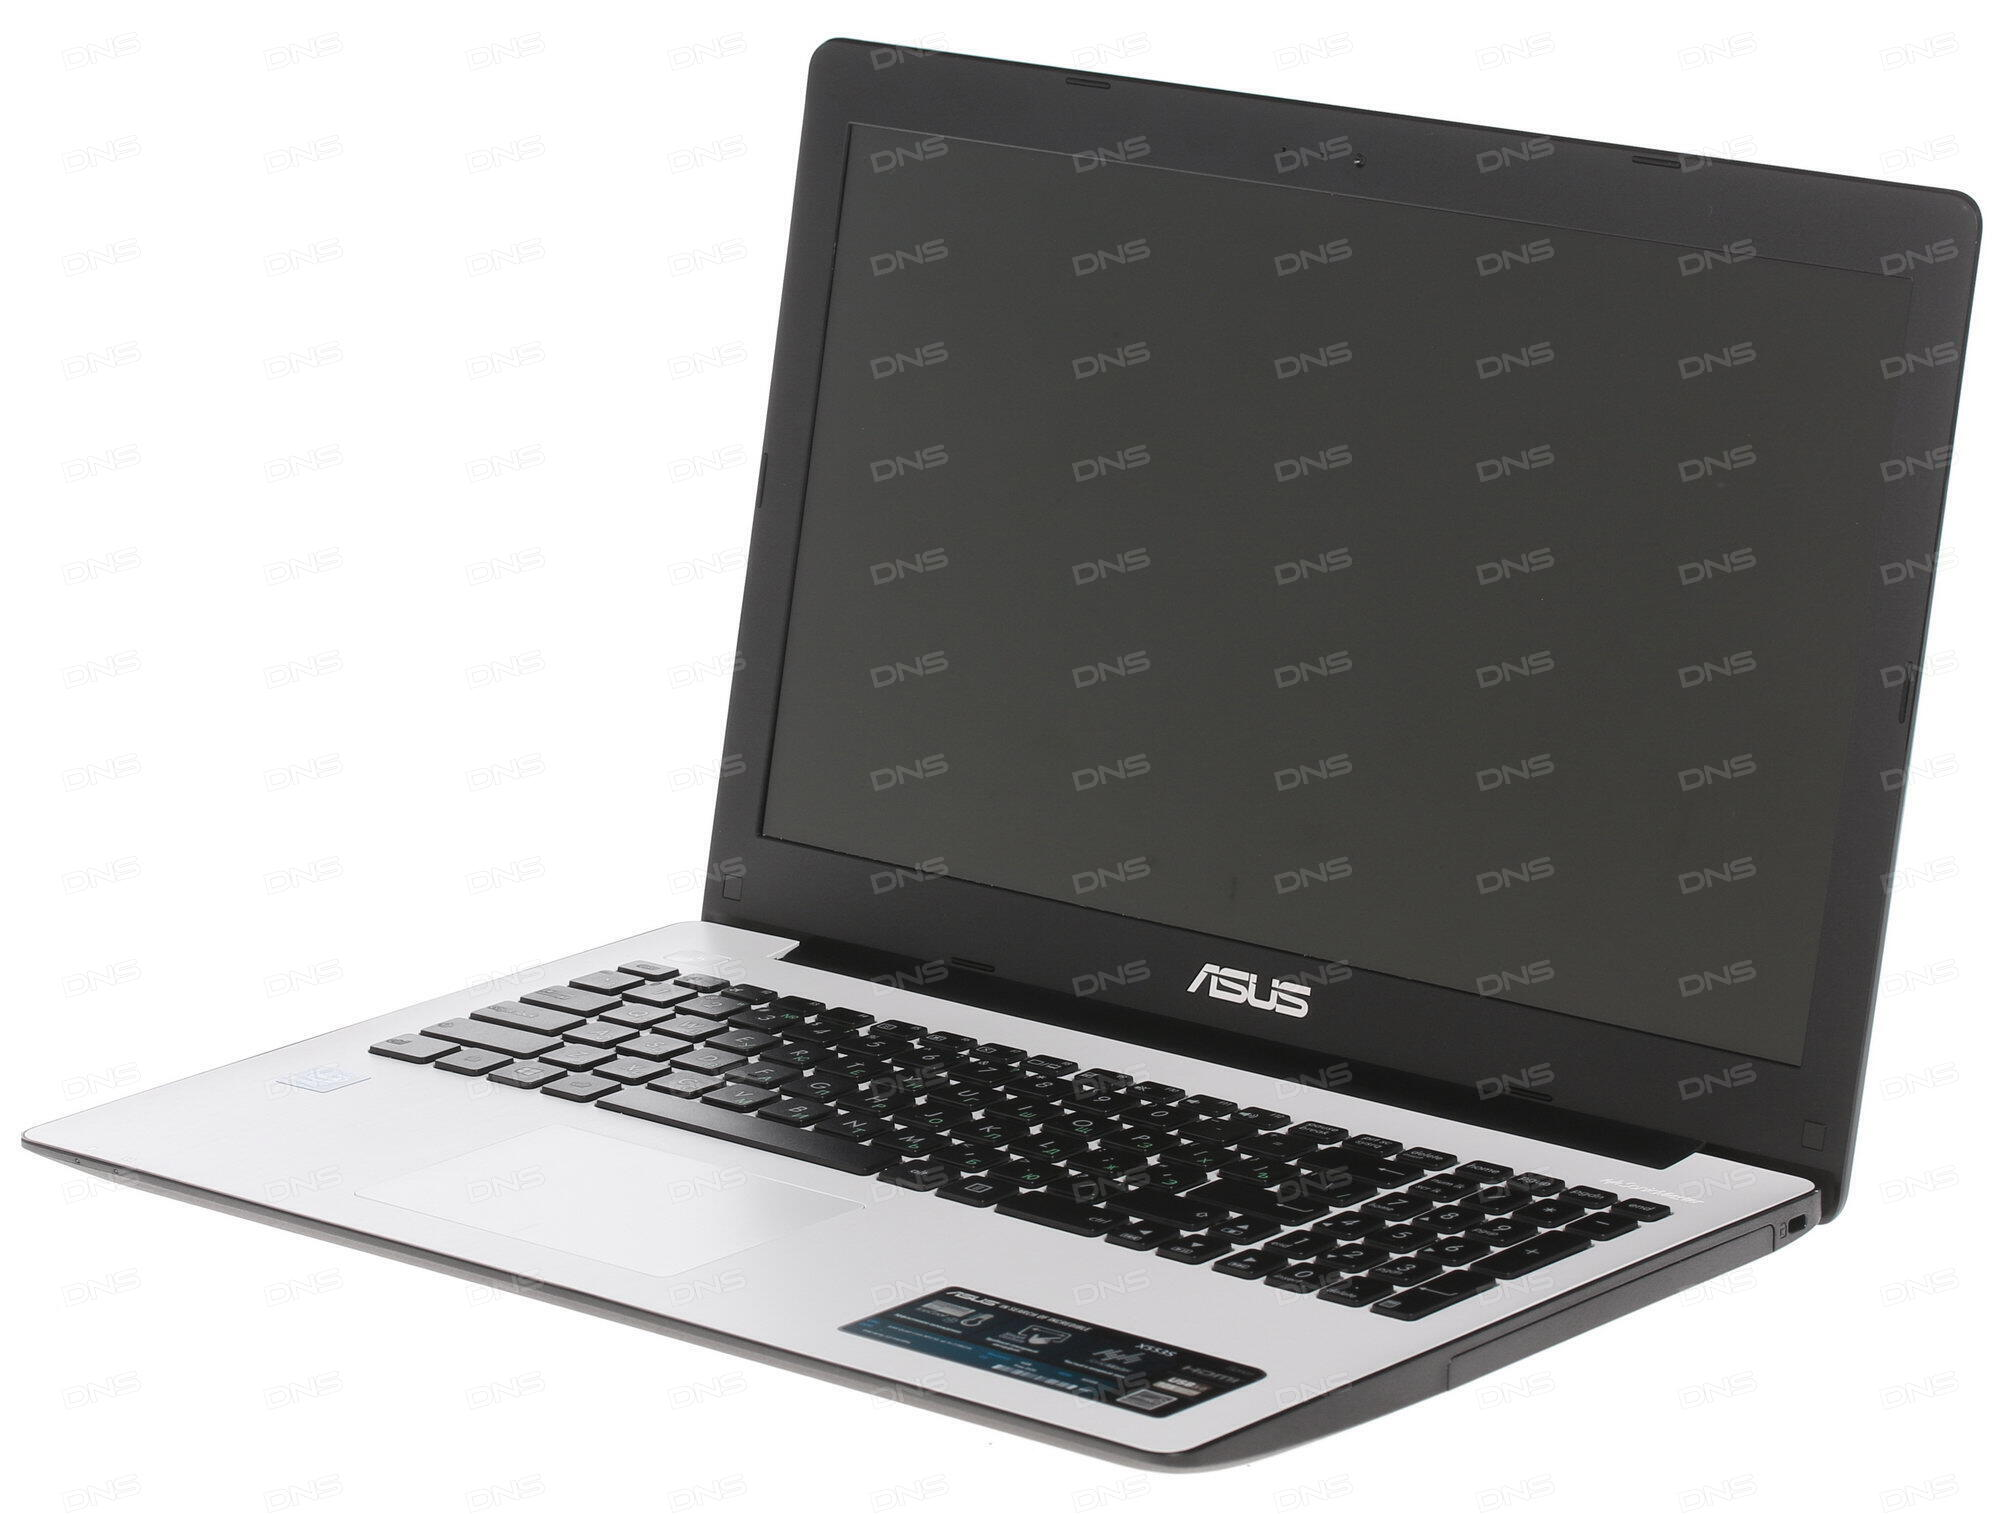 Ноутбук ASUS X553SA 90NB0AC1-M05820 (Intel Celeron N3050 1.6 GHz/2048Mb/500Gb/No ODD/Intel HD Graphics/Wi-Fi/Bluetooth/Cam/15.6/1366x768/DOS)